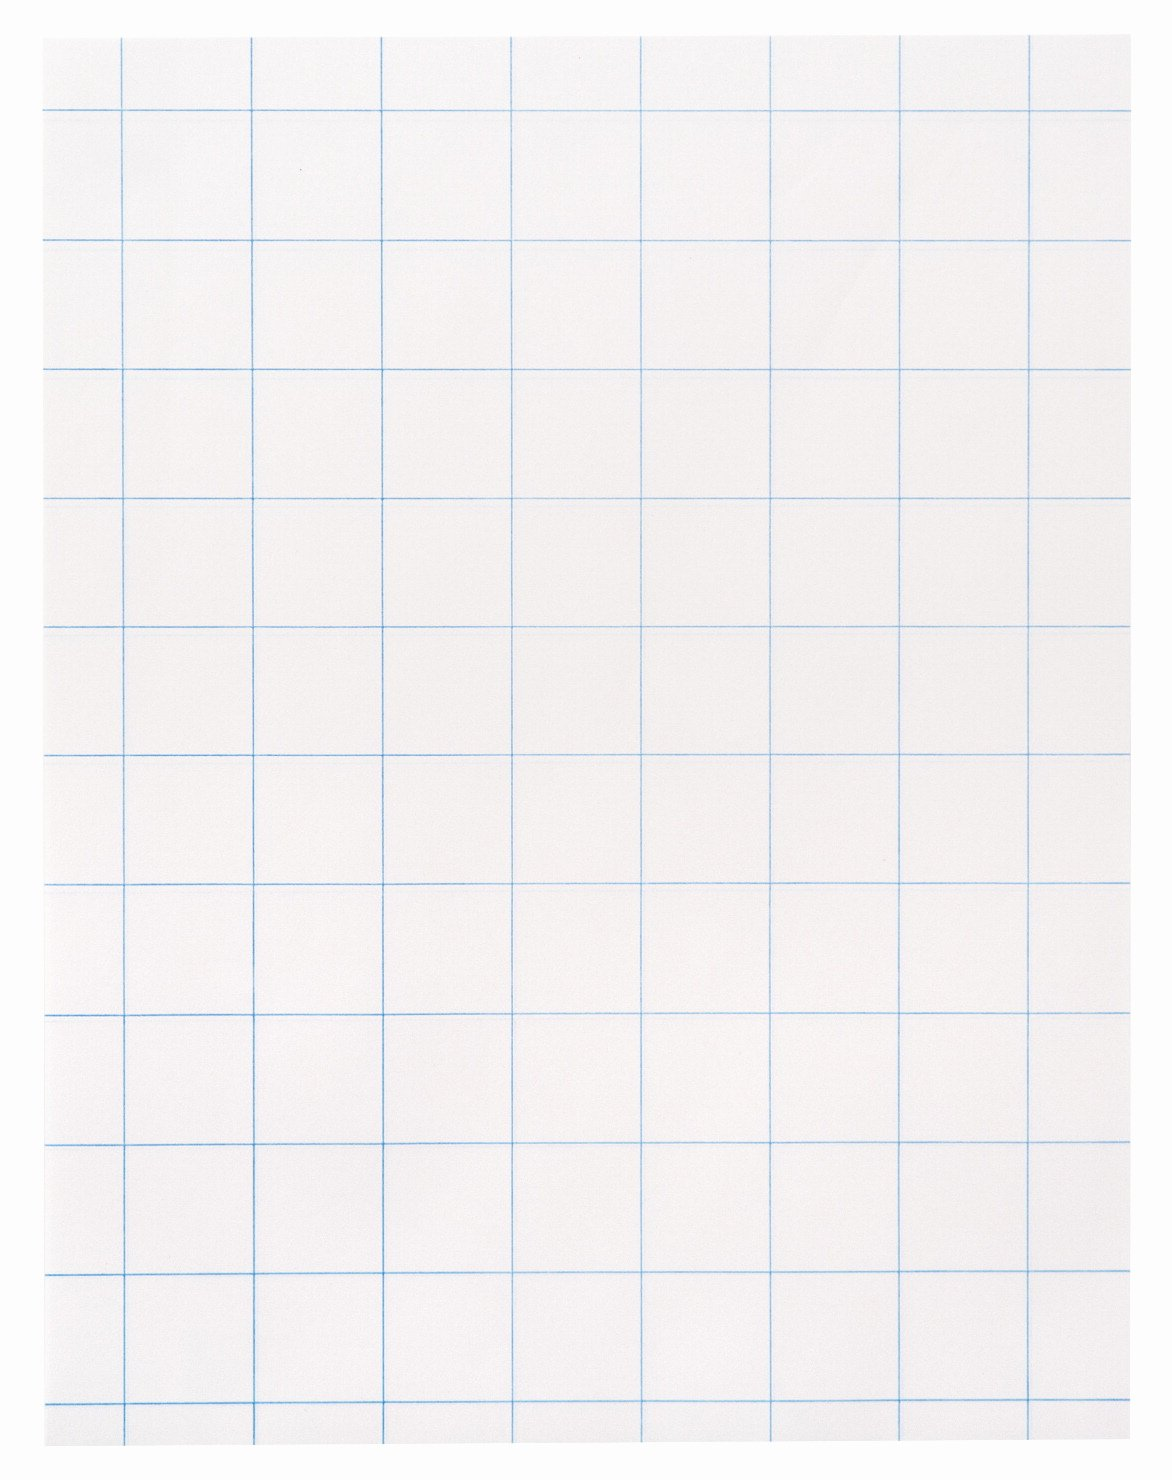 Big Square Graph Paper Best Of School Smart Graph Paper White Classroom Direct